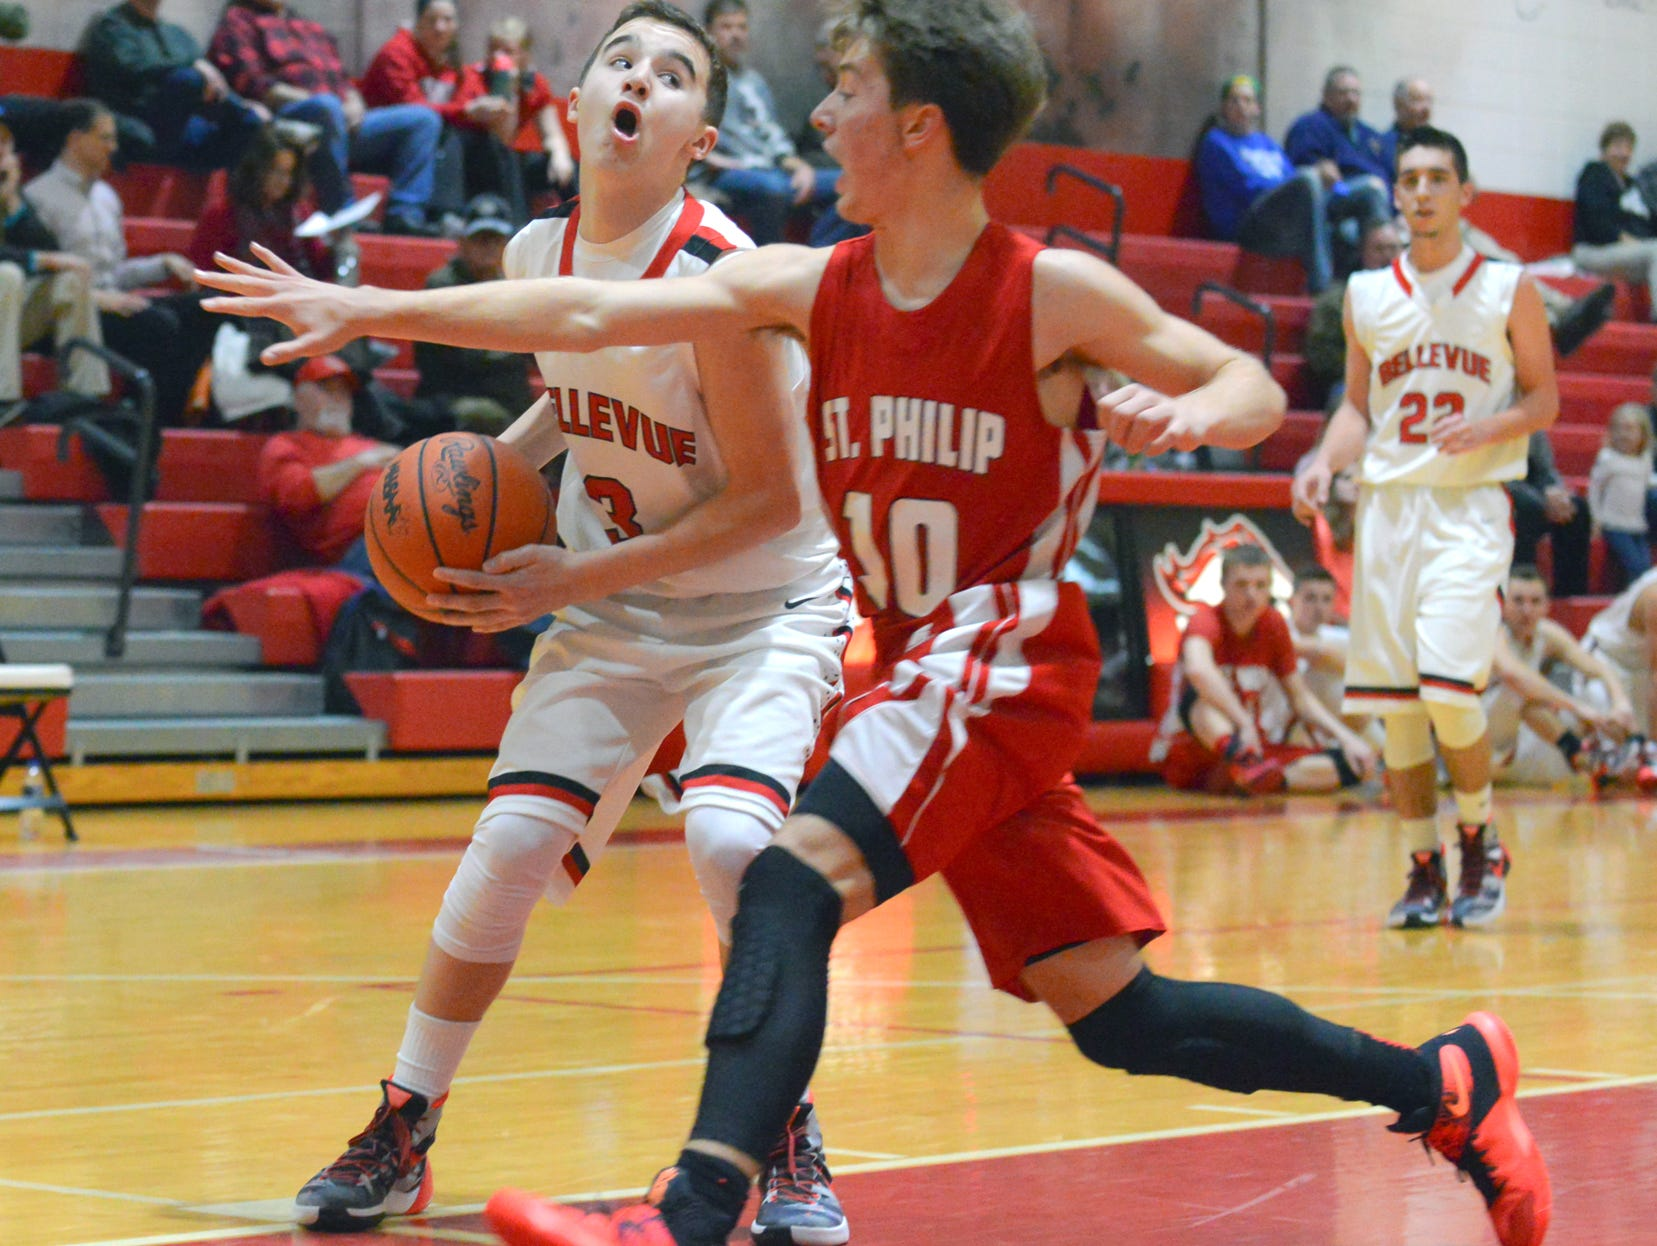 Bellevue's Gino Costello drives the basket Friday night.